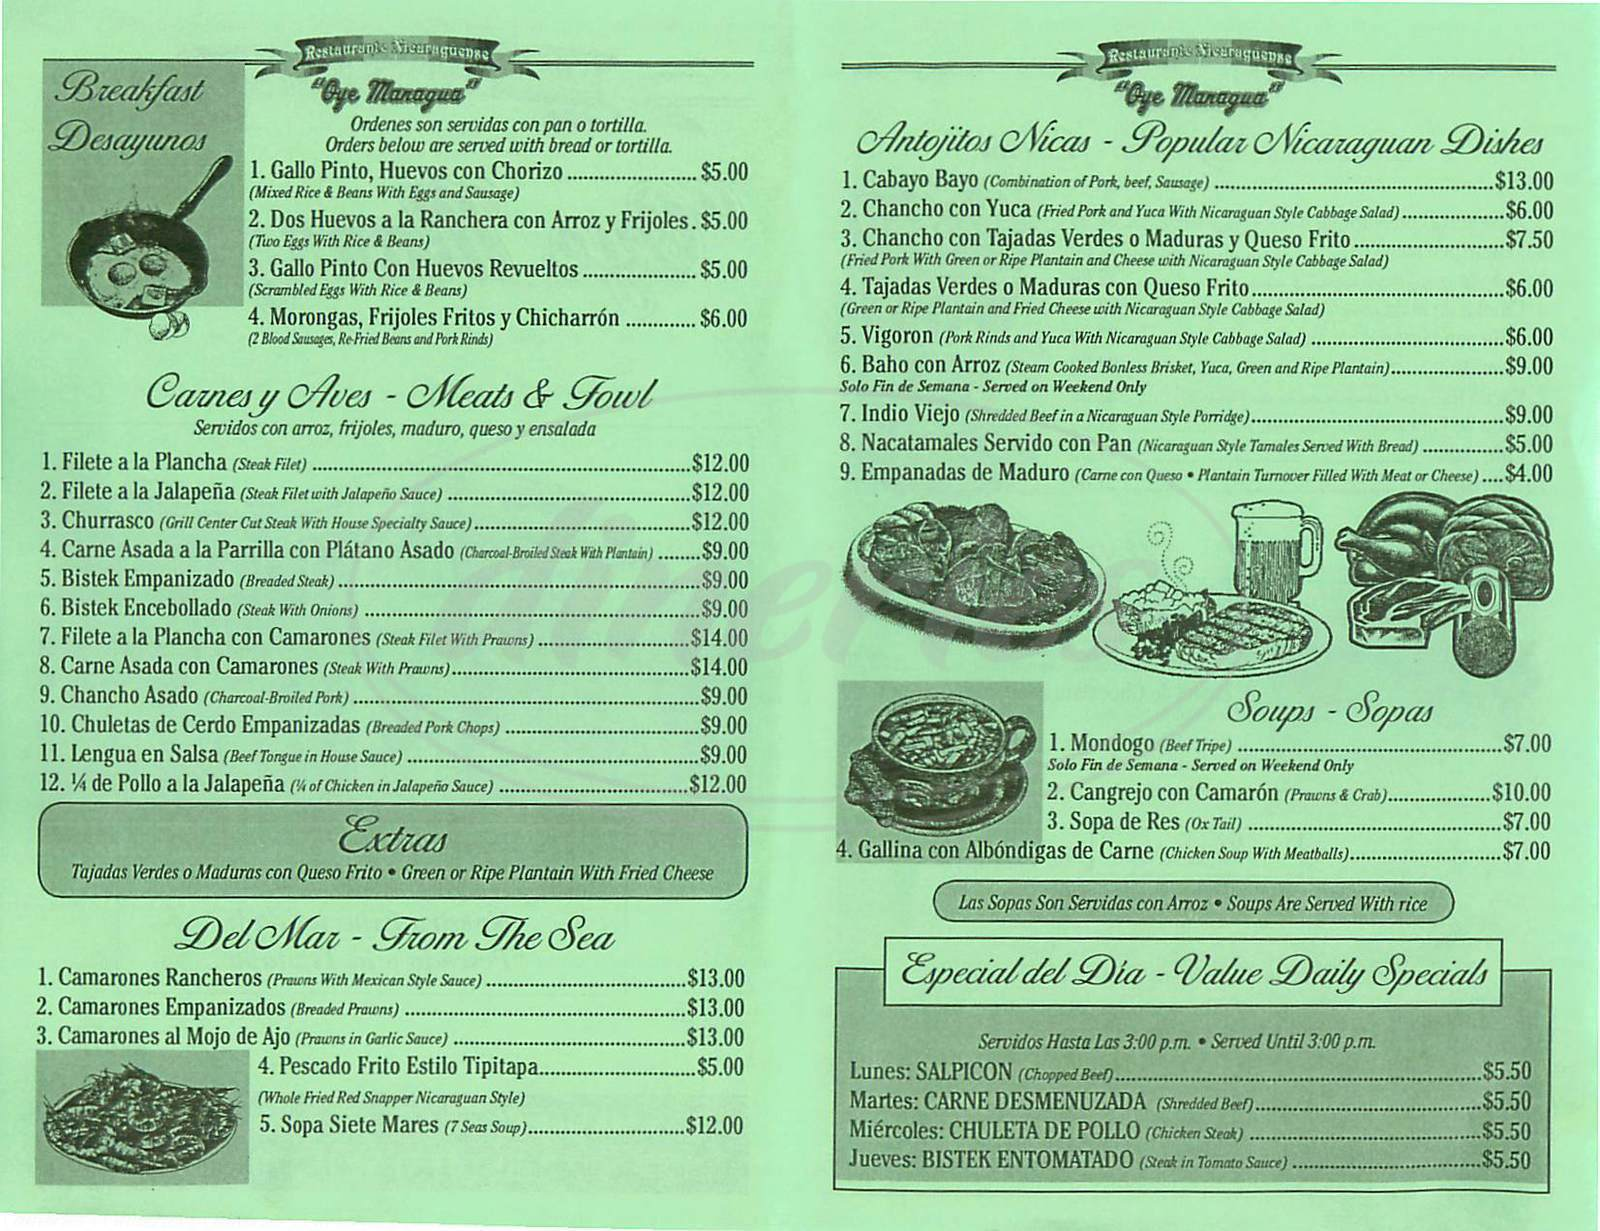 menu for Oye Managua